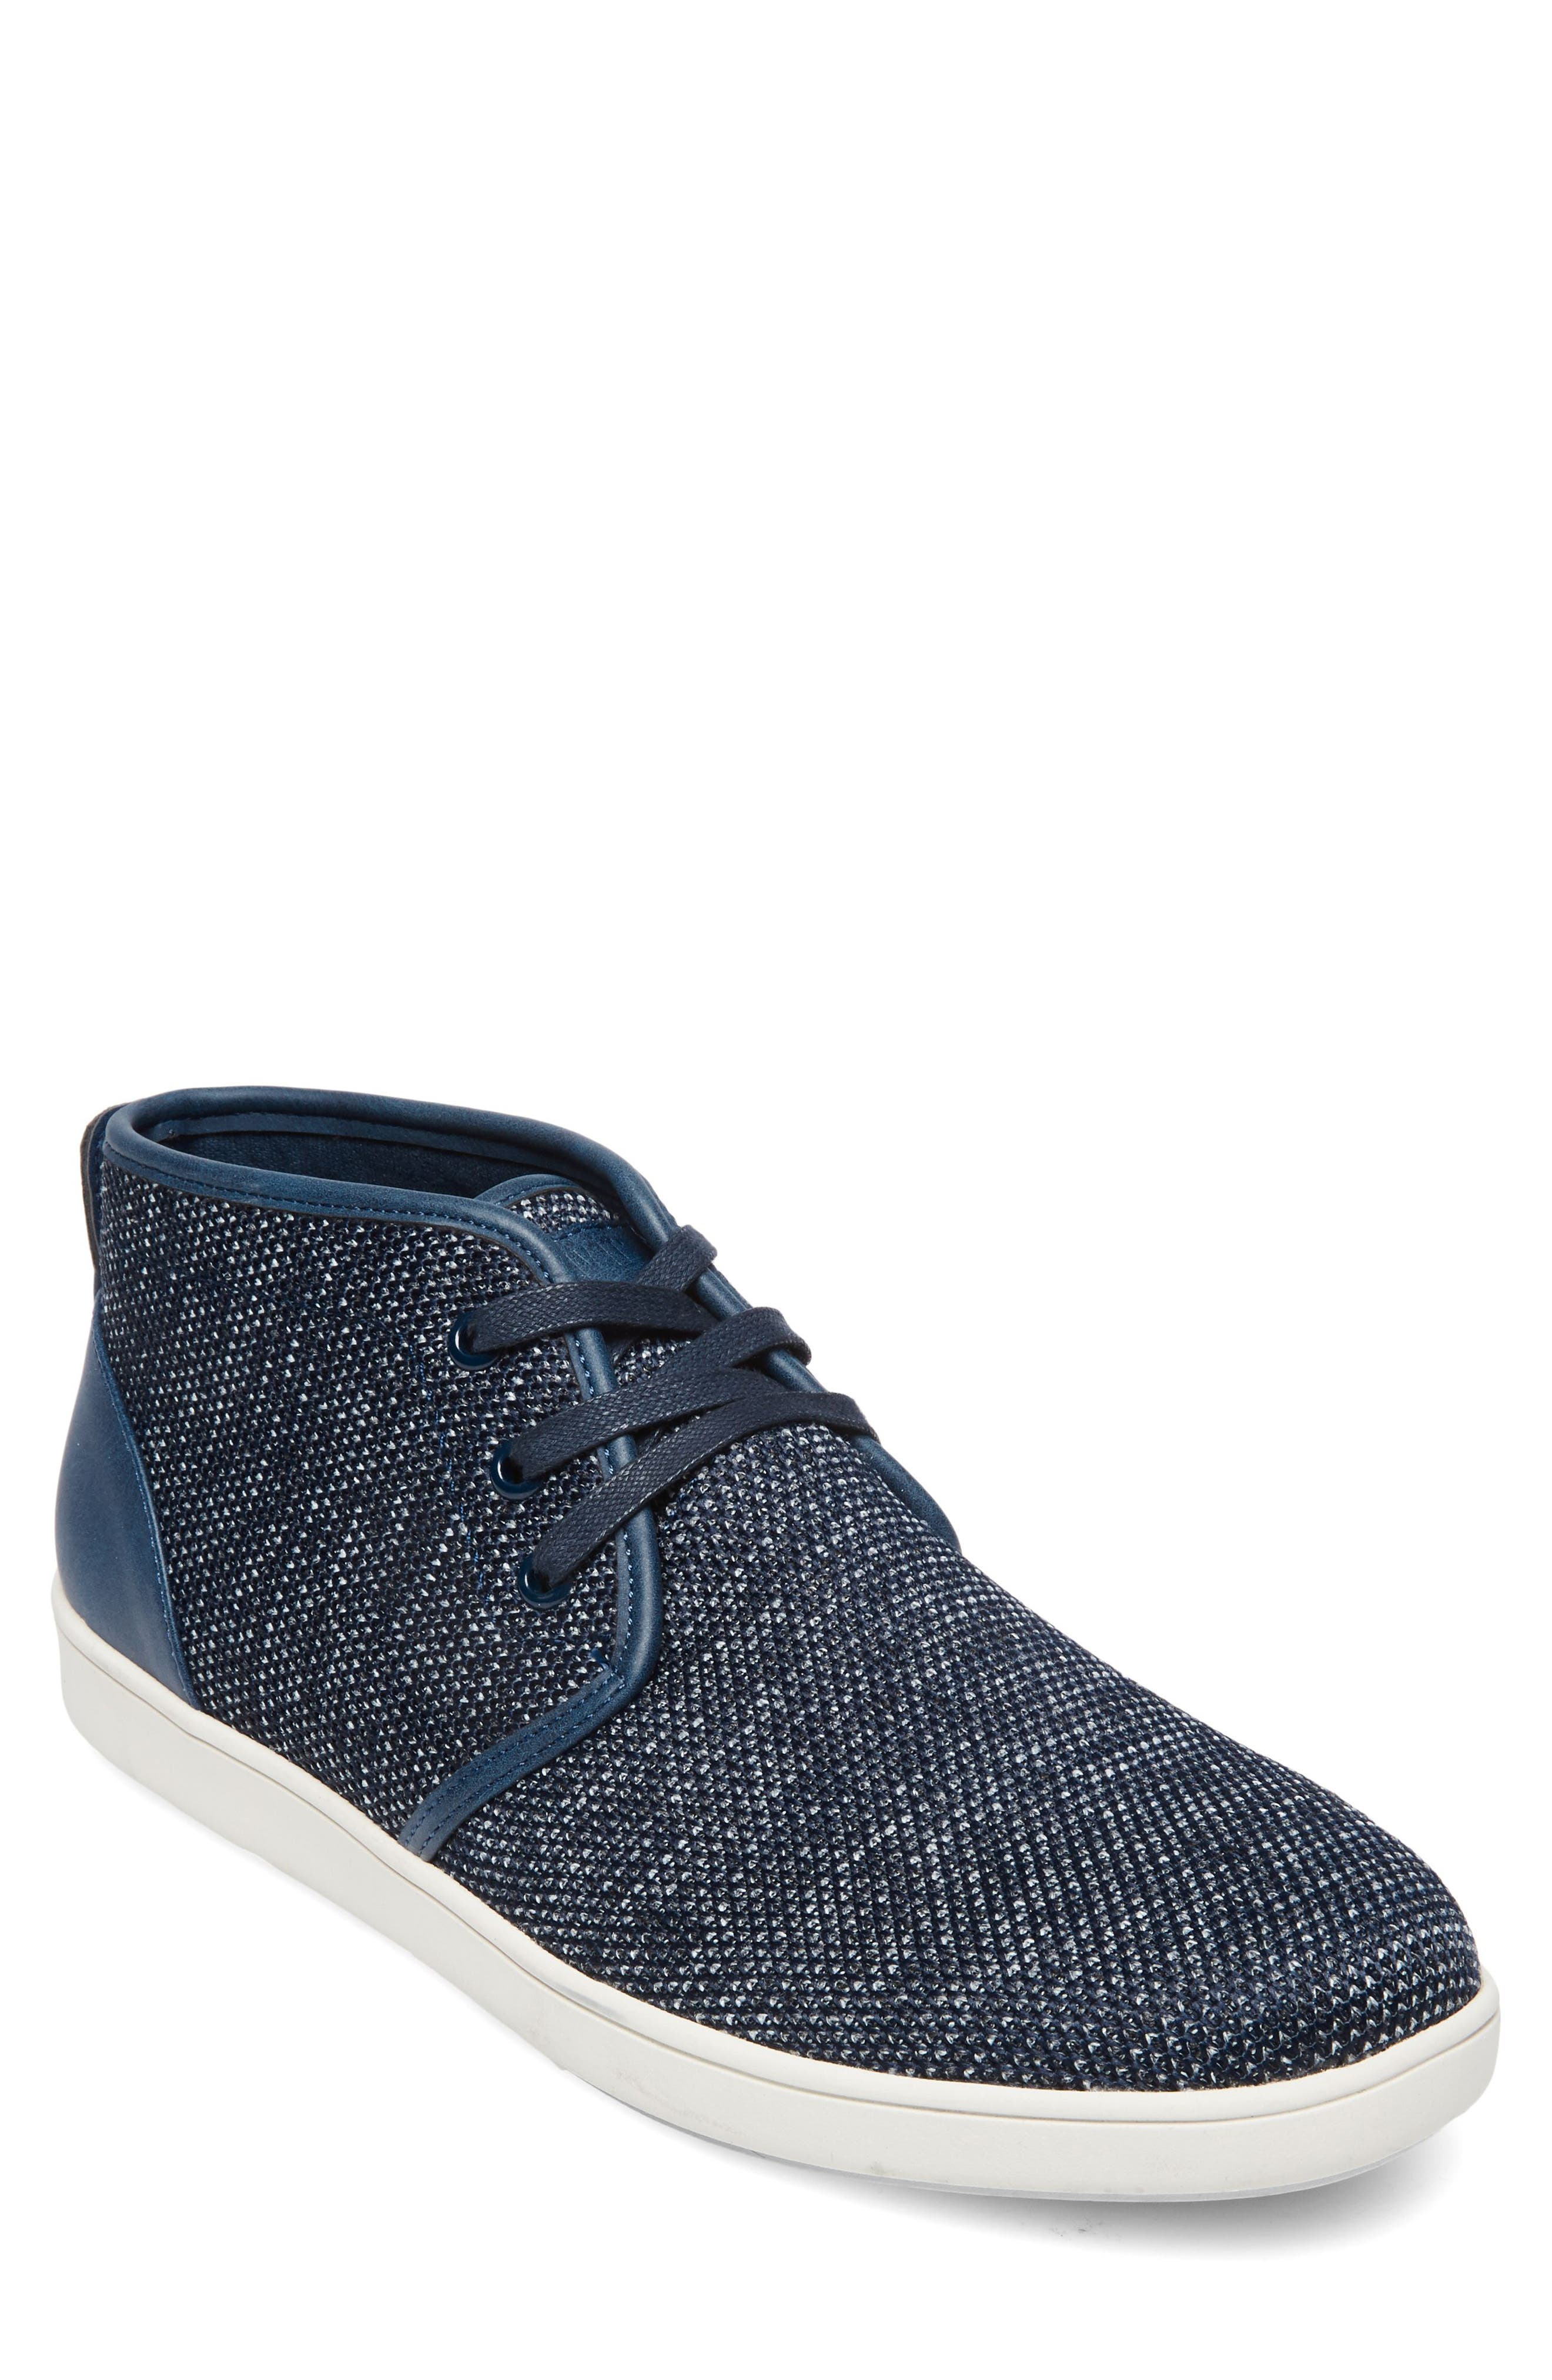 Fowler Knit Mid Top Sneaker,                         Main,                         color, Navy Leather